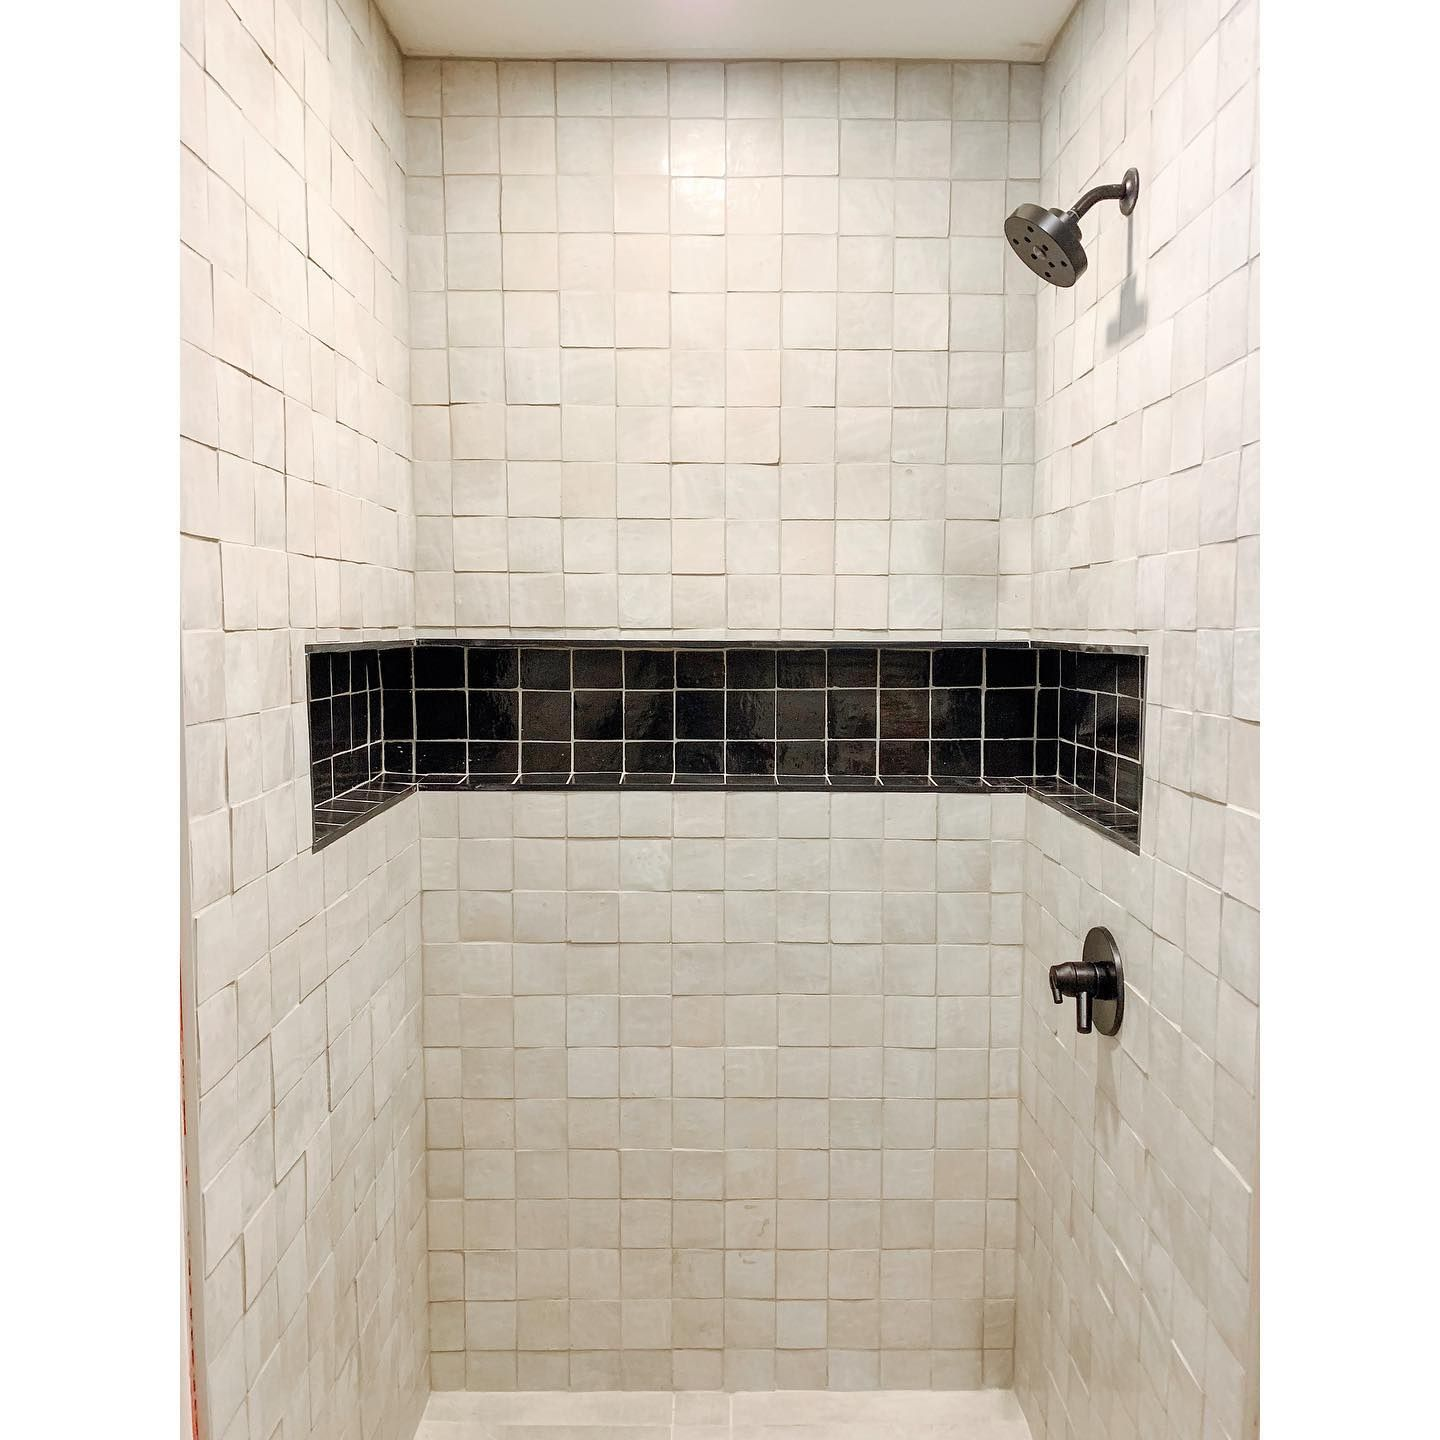 Plenty Of Room From Product With This Wrap Around Shower Niche Love The Contrast Of The Zellige Tiles Iconic Styling Shower Niche Tiles Direct Cement Tile